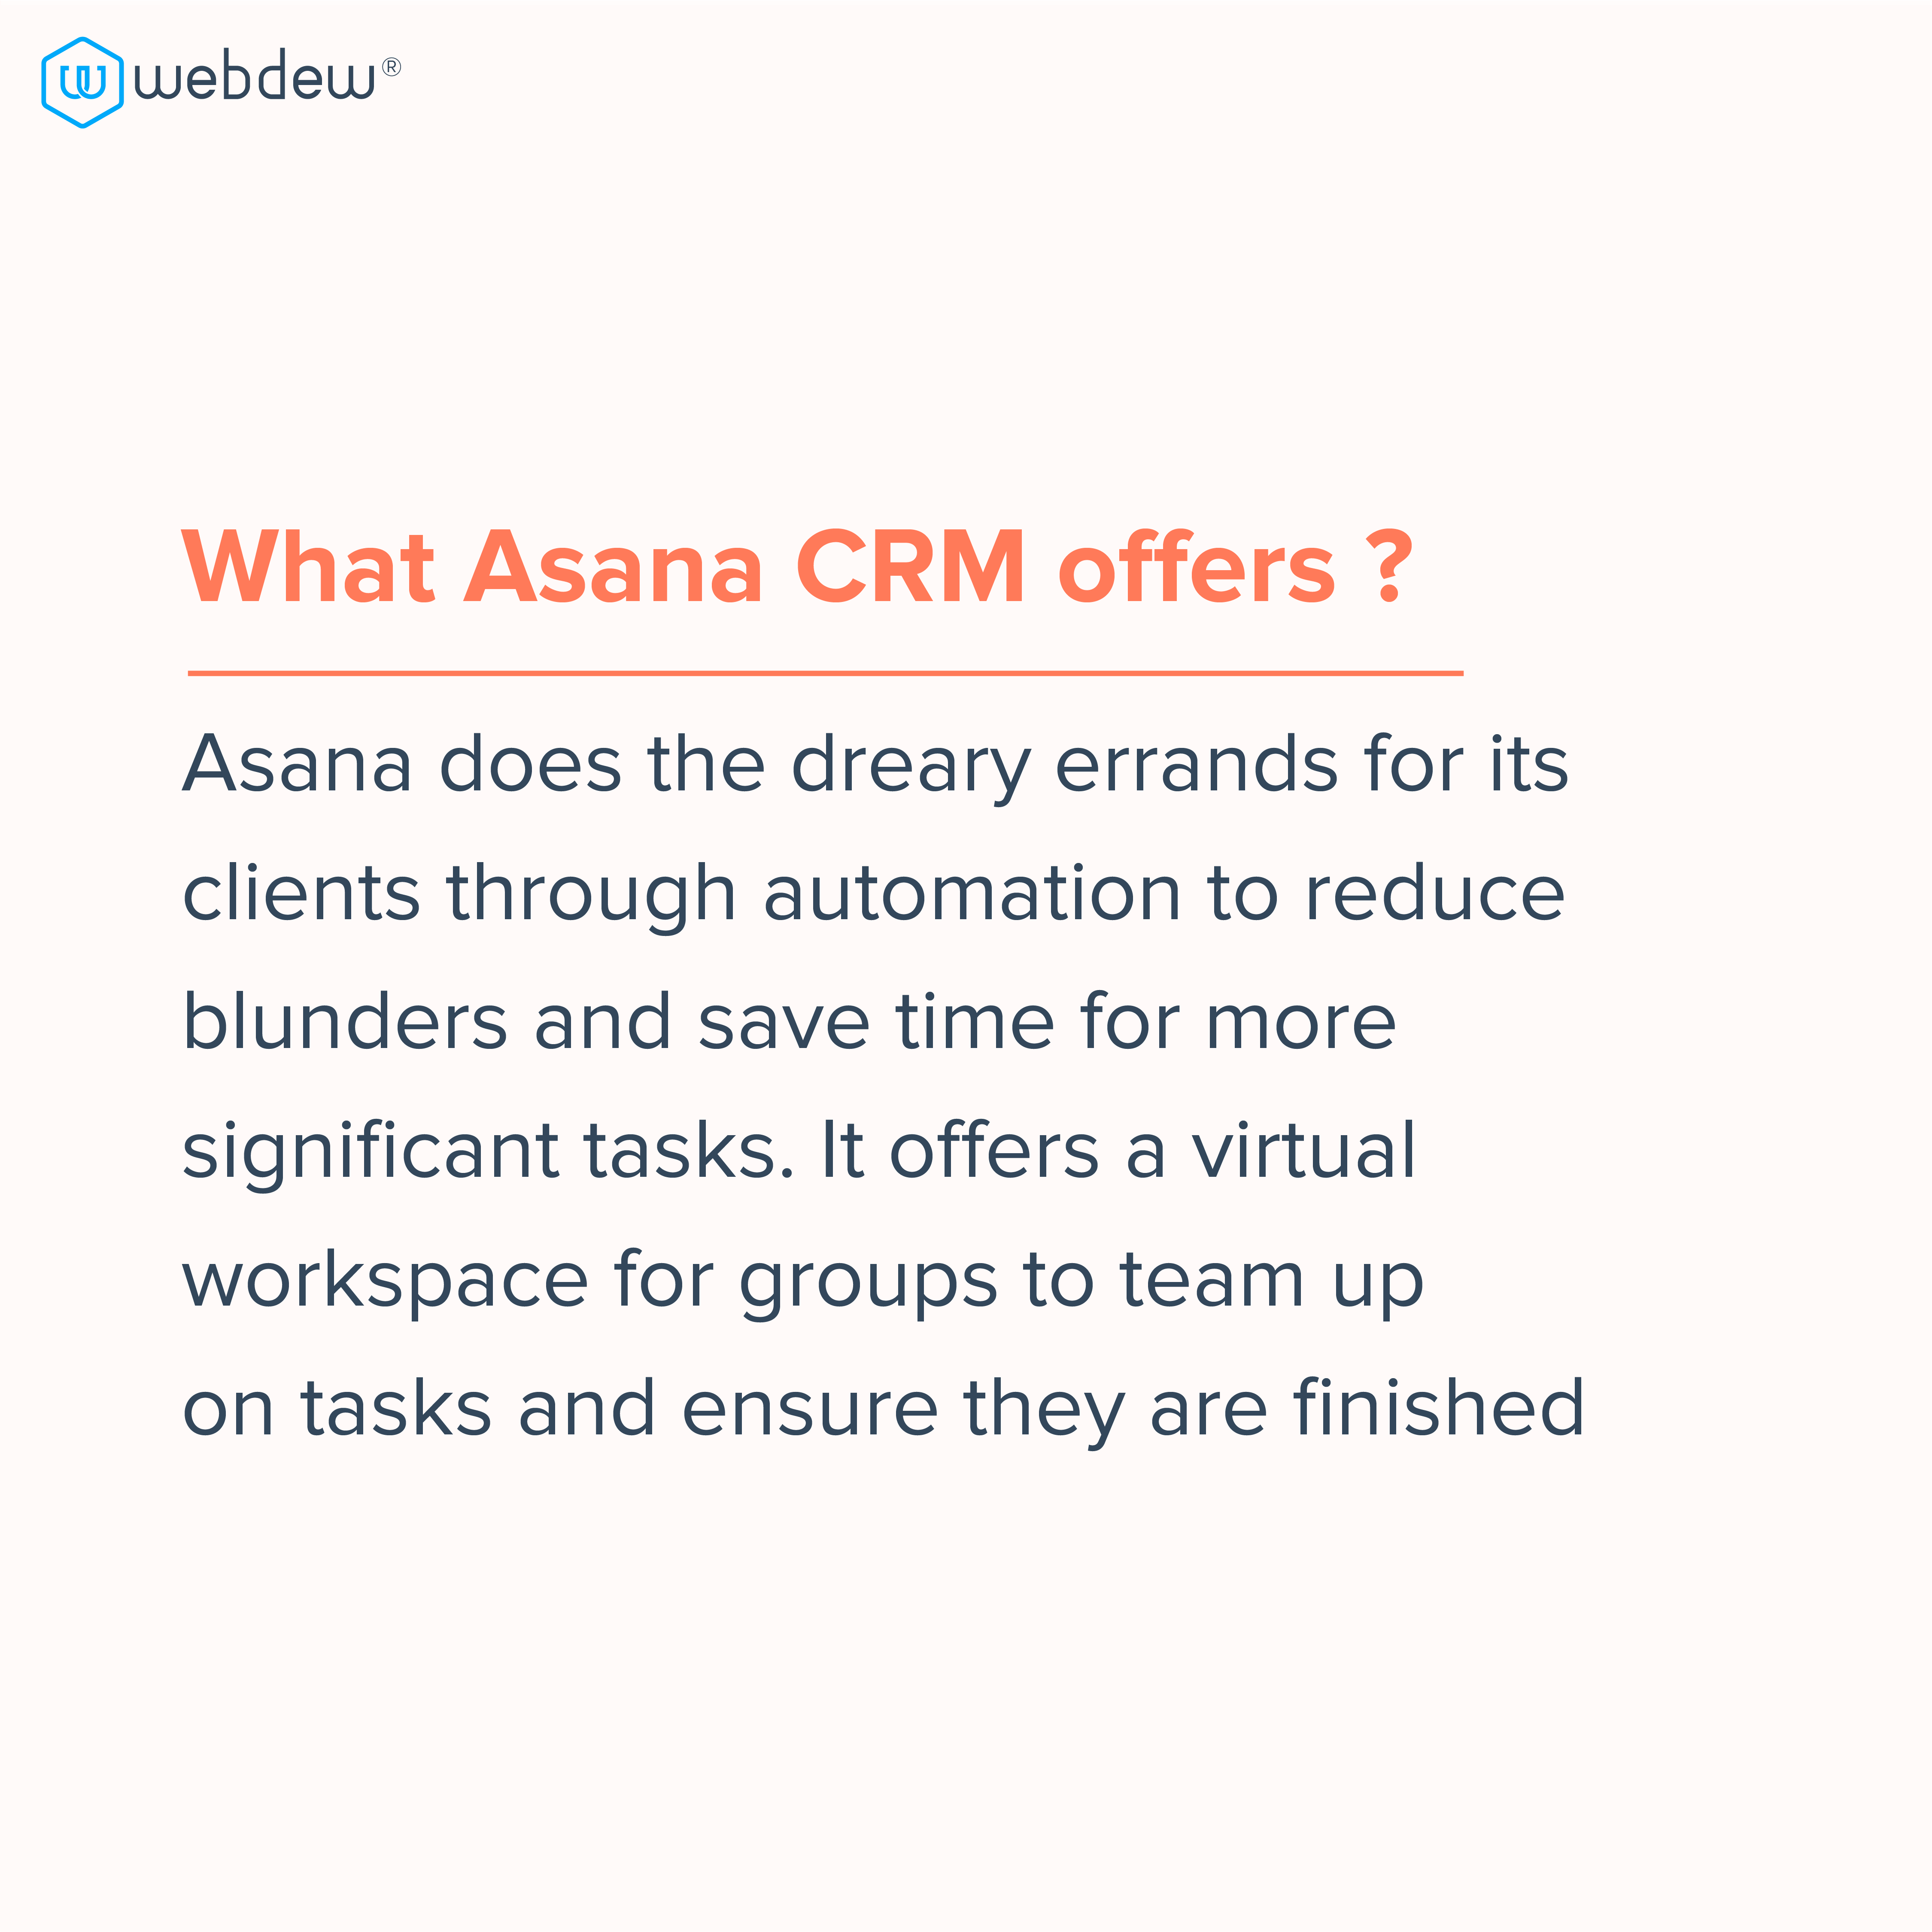 4. what asana CRM offers